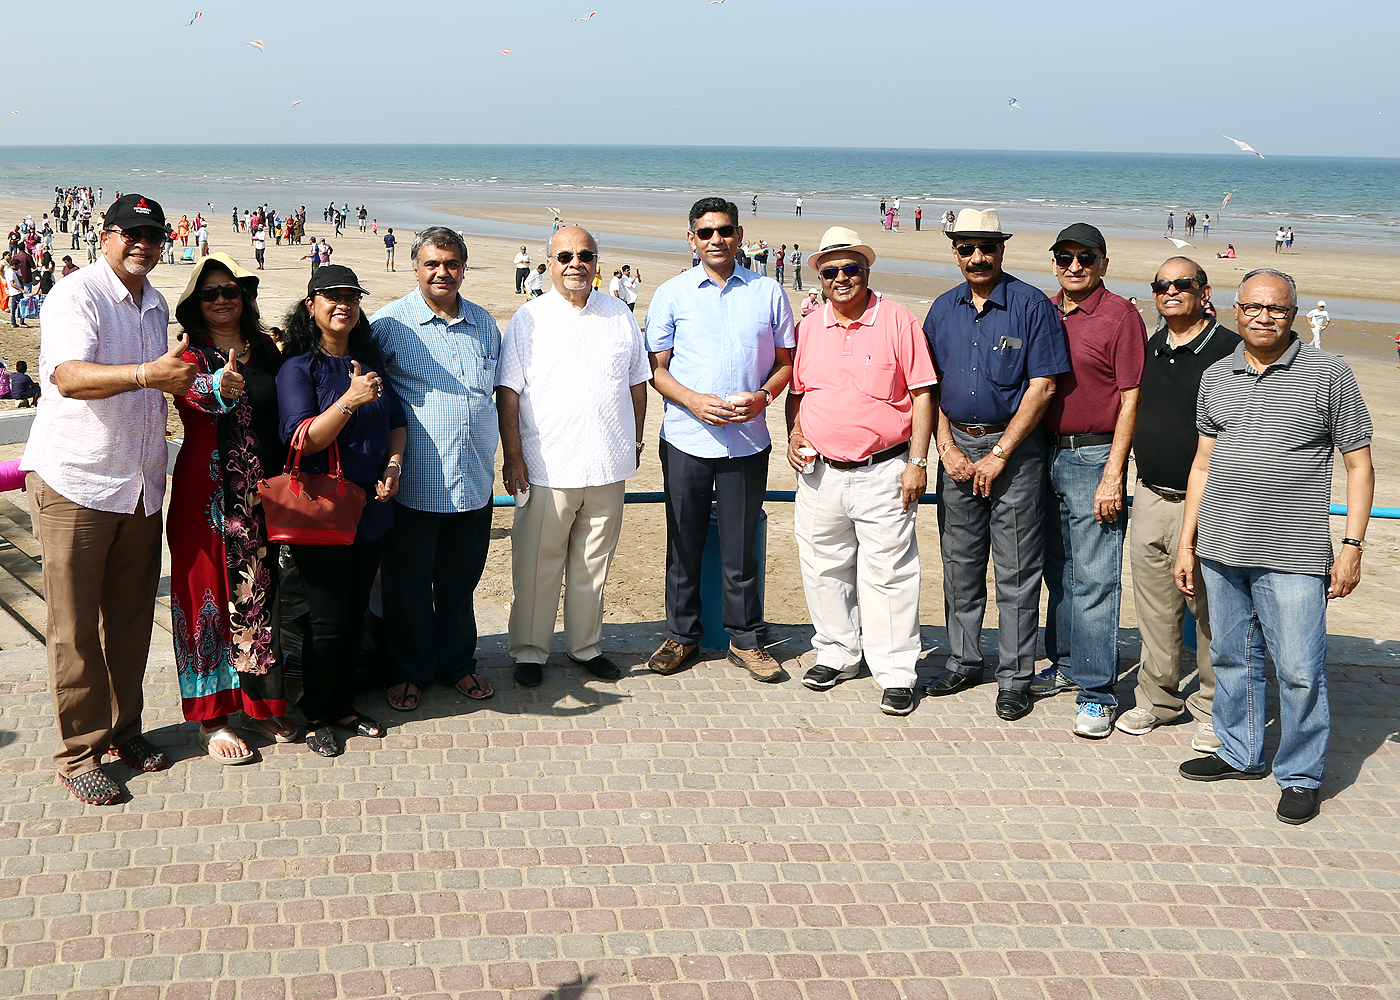 The Indian community in Muscat celebrates Kite Flying Festival - Patangmahotsav 2019